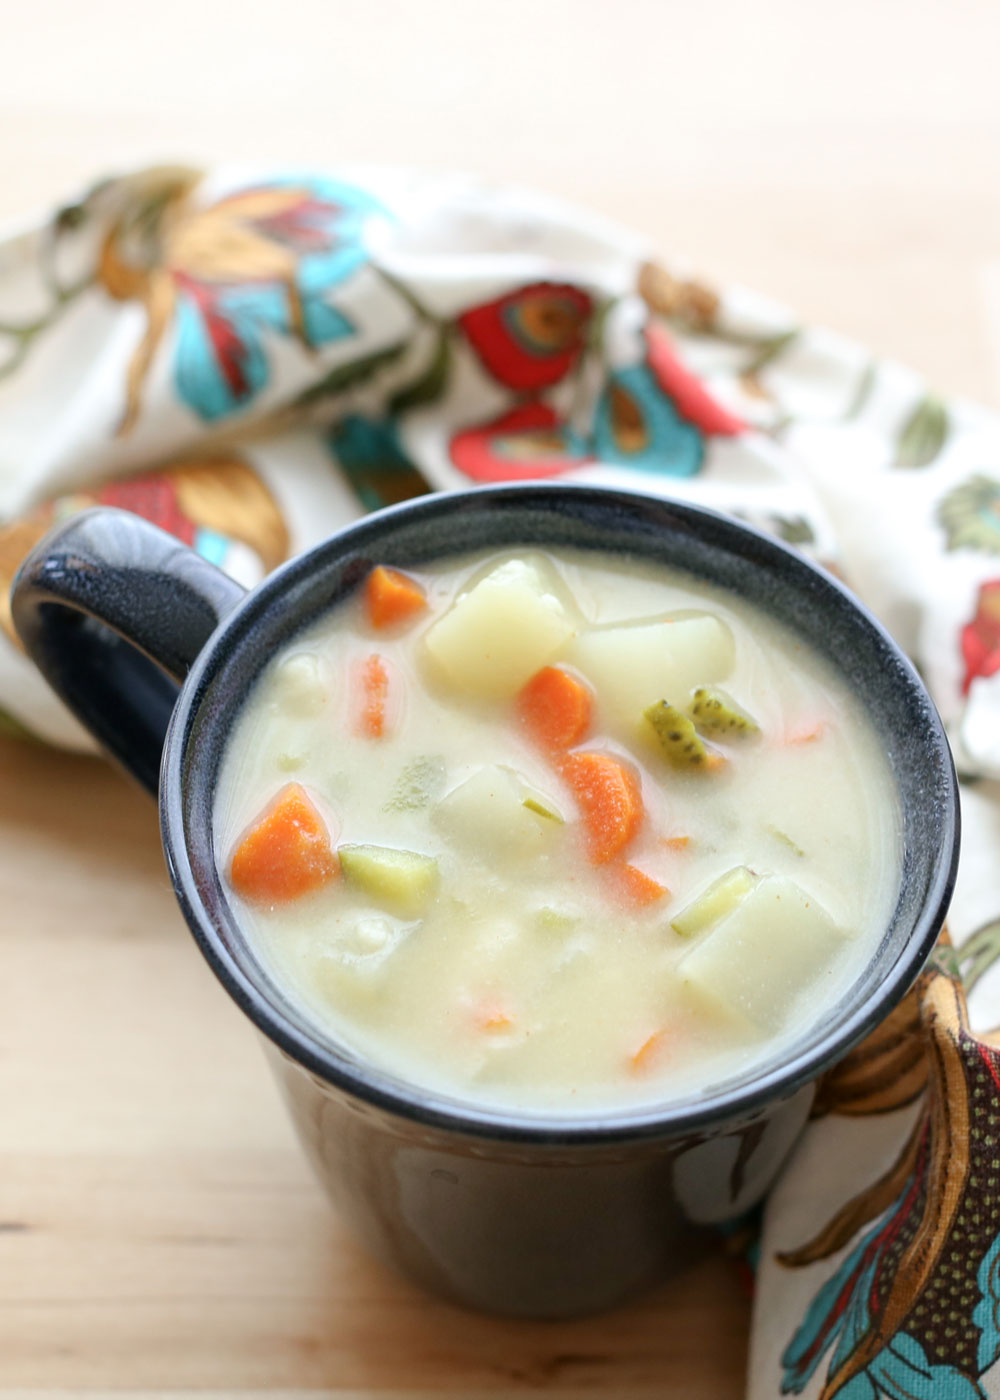 Creamy, potato chowder style soup, loaded with dill pickles and a heck of a lot of flavor, this Dill Pickle Soup is unforgettable!